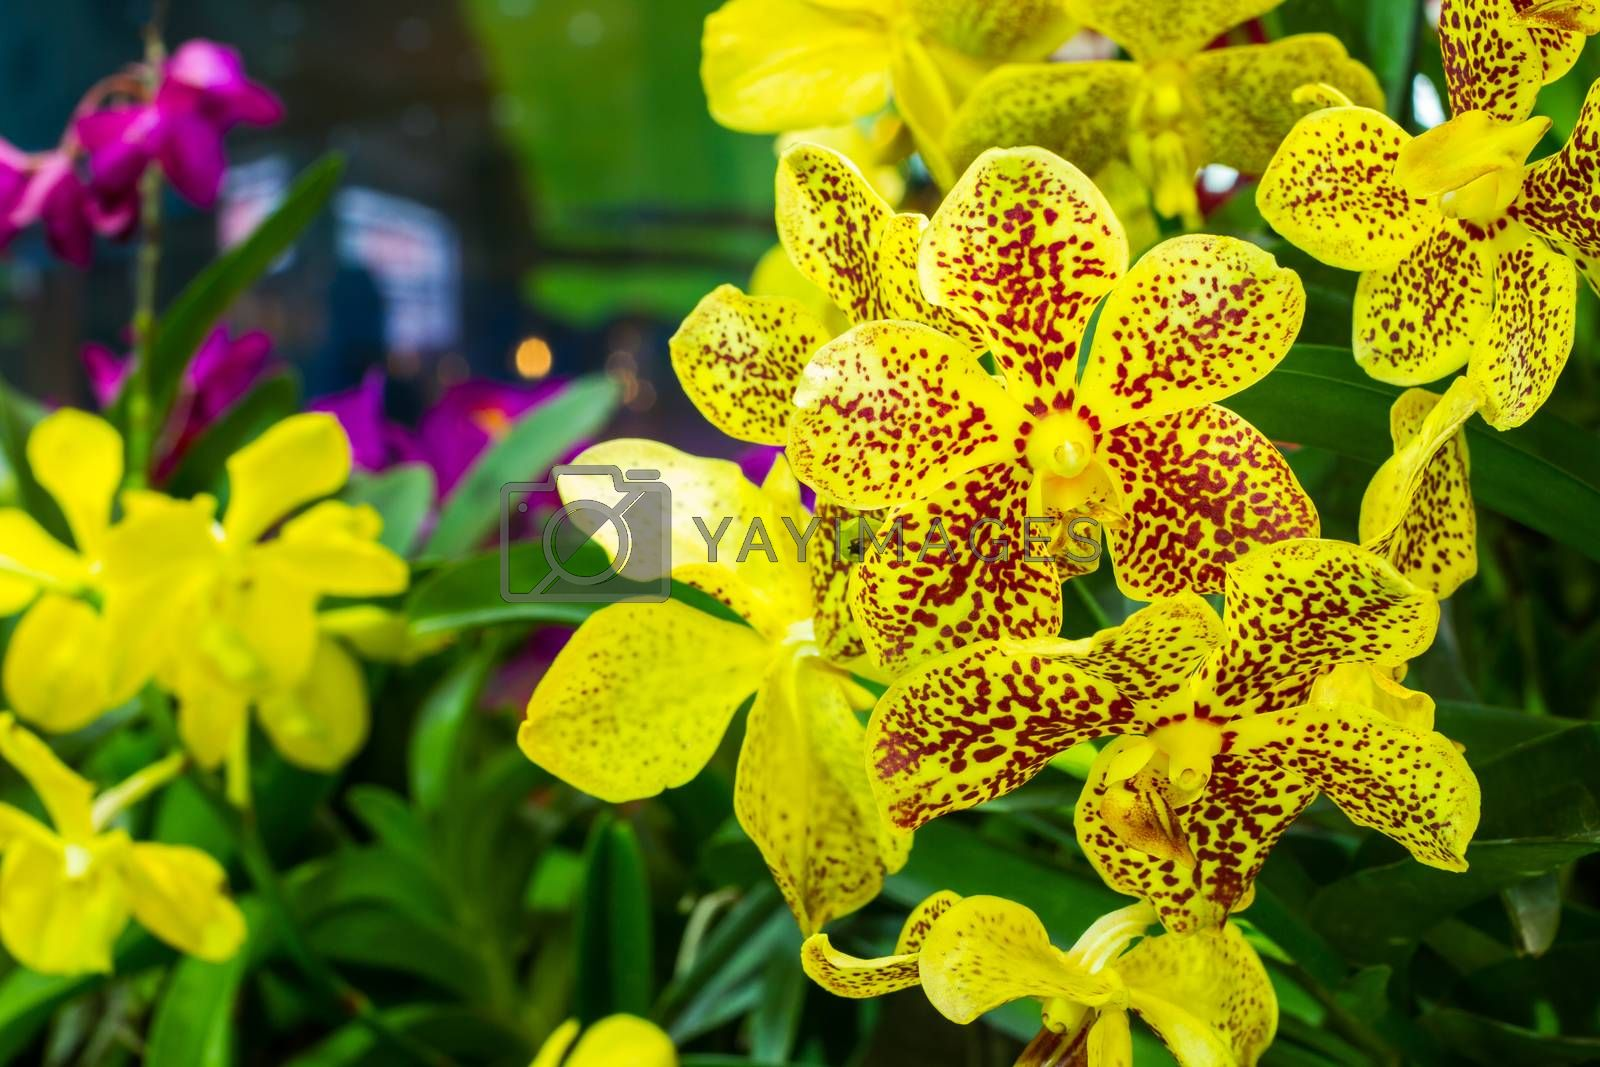 yellow with red spots orchid (Phalaenopsis) with copyspace on the left